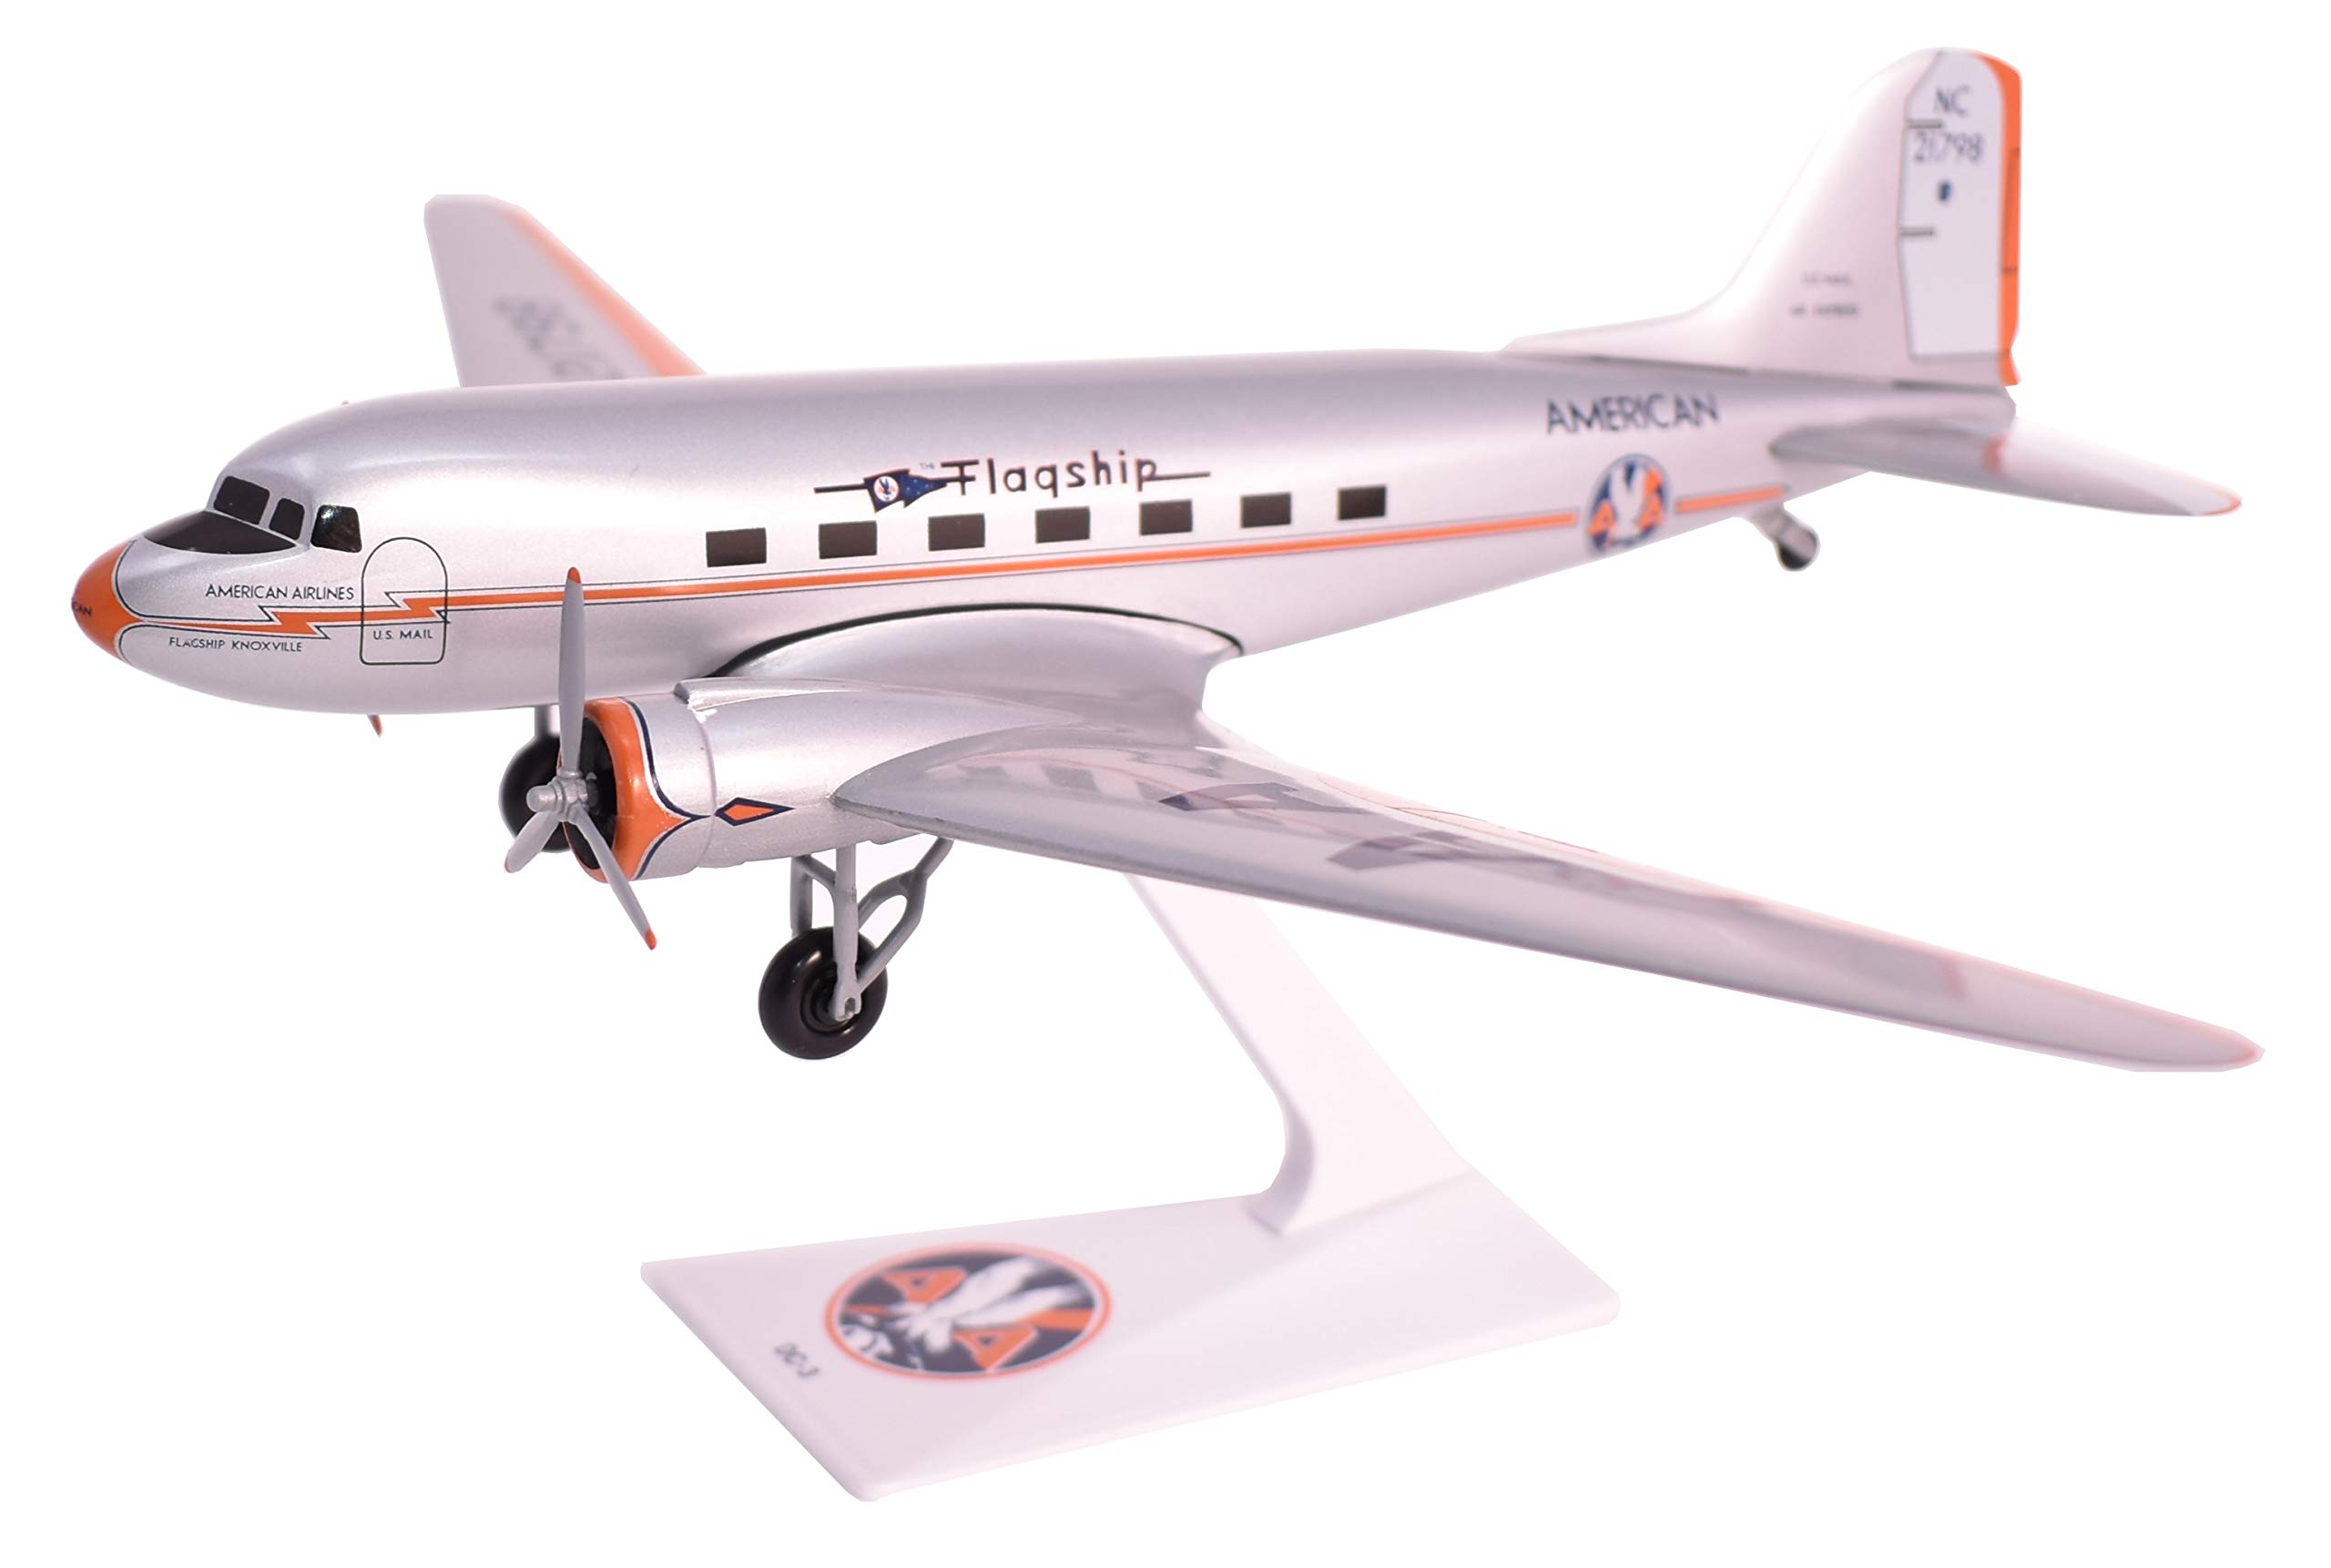 American Flagship Knoxville DC-3 Airplane Miniature Model Plastic Snap Fit 1:200 Part# ADC-00300C-004